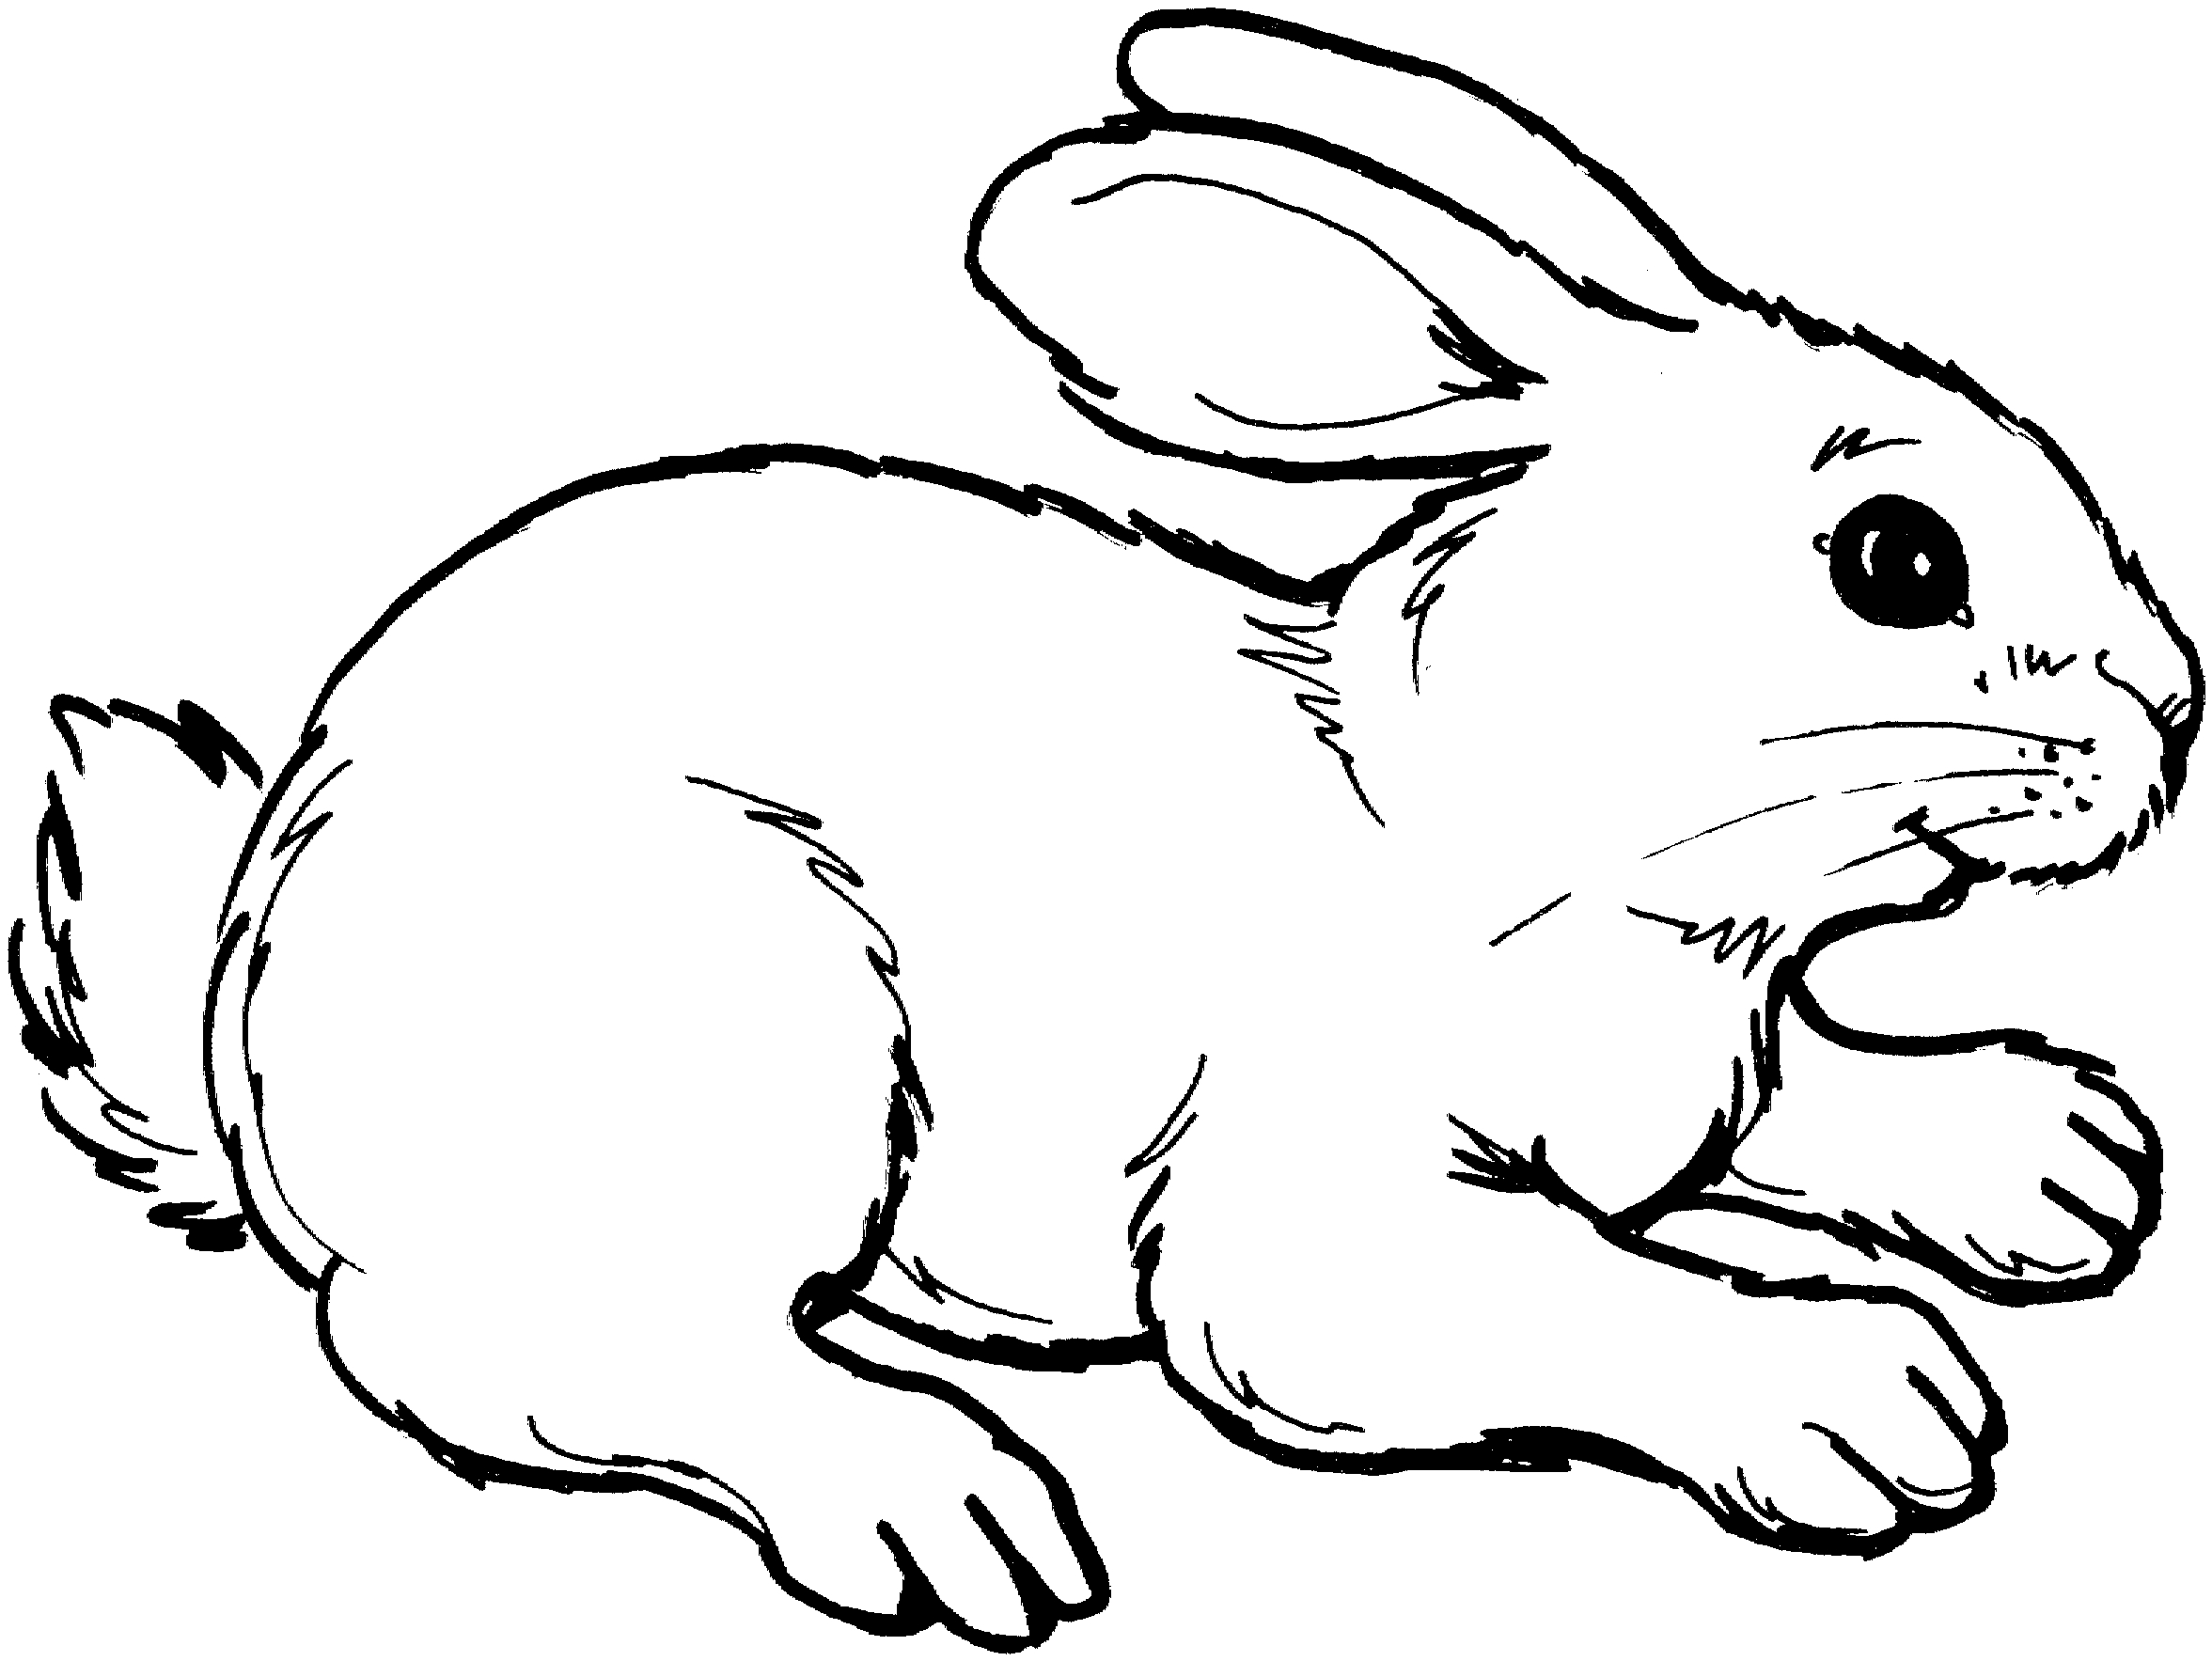 Bunny clipart black and white. Fresh design digital collection